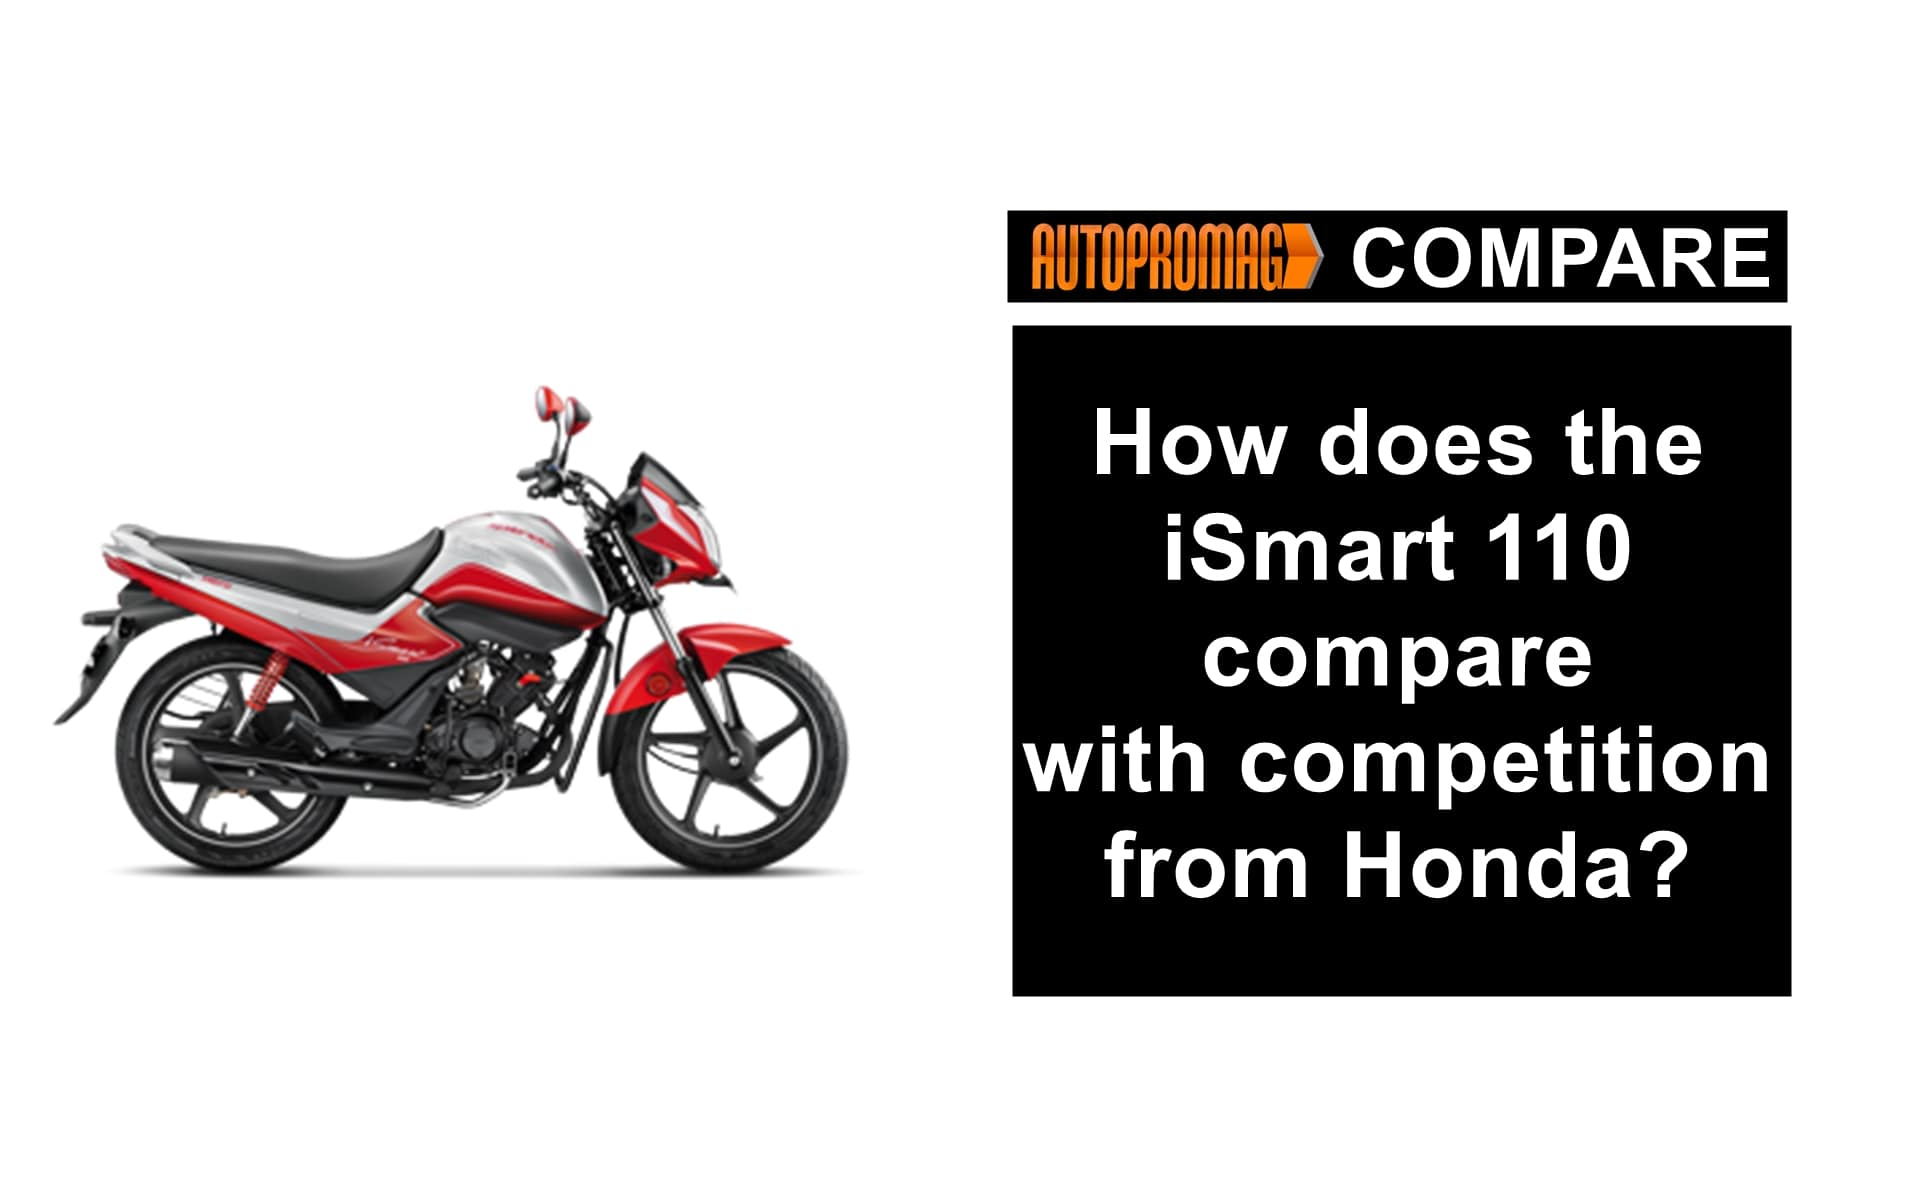 Hero splendor iSmart 110 vs Honda